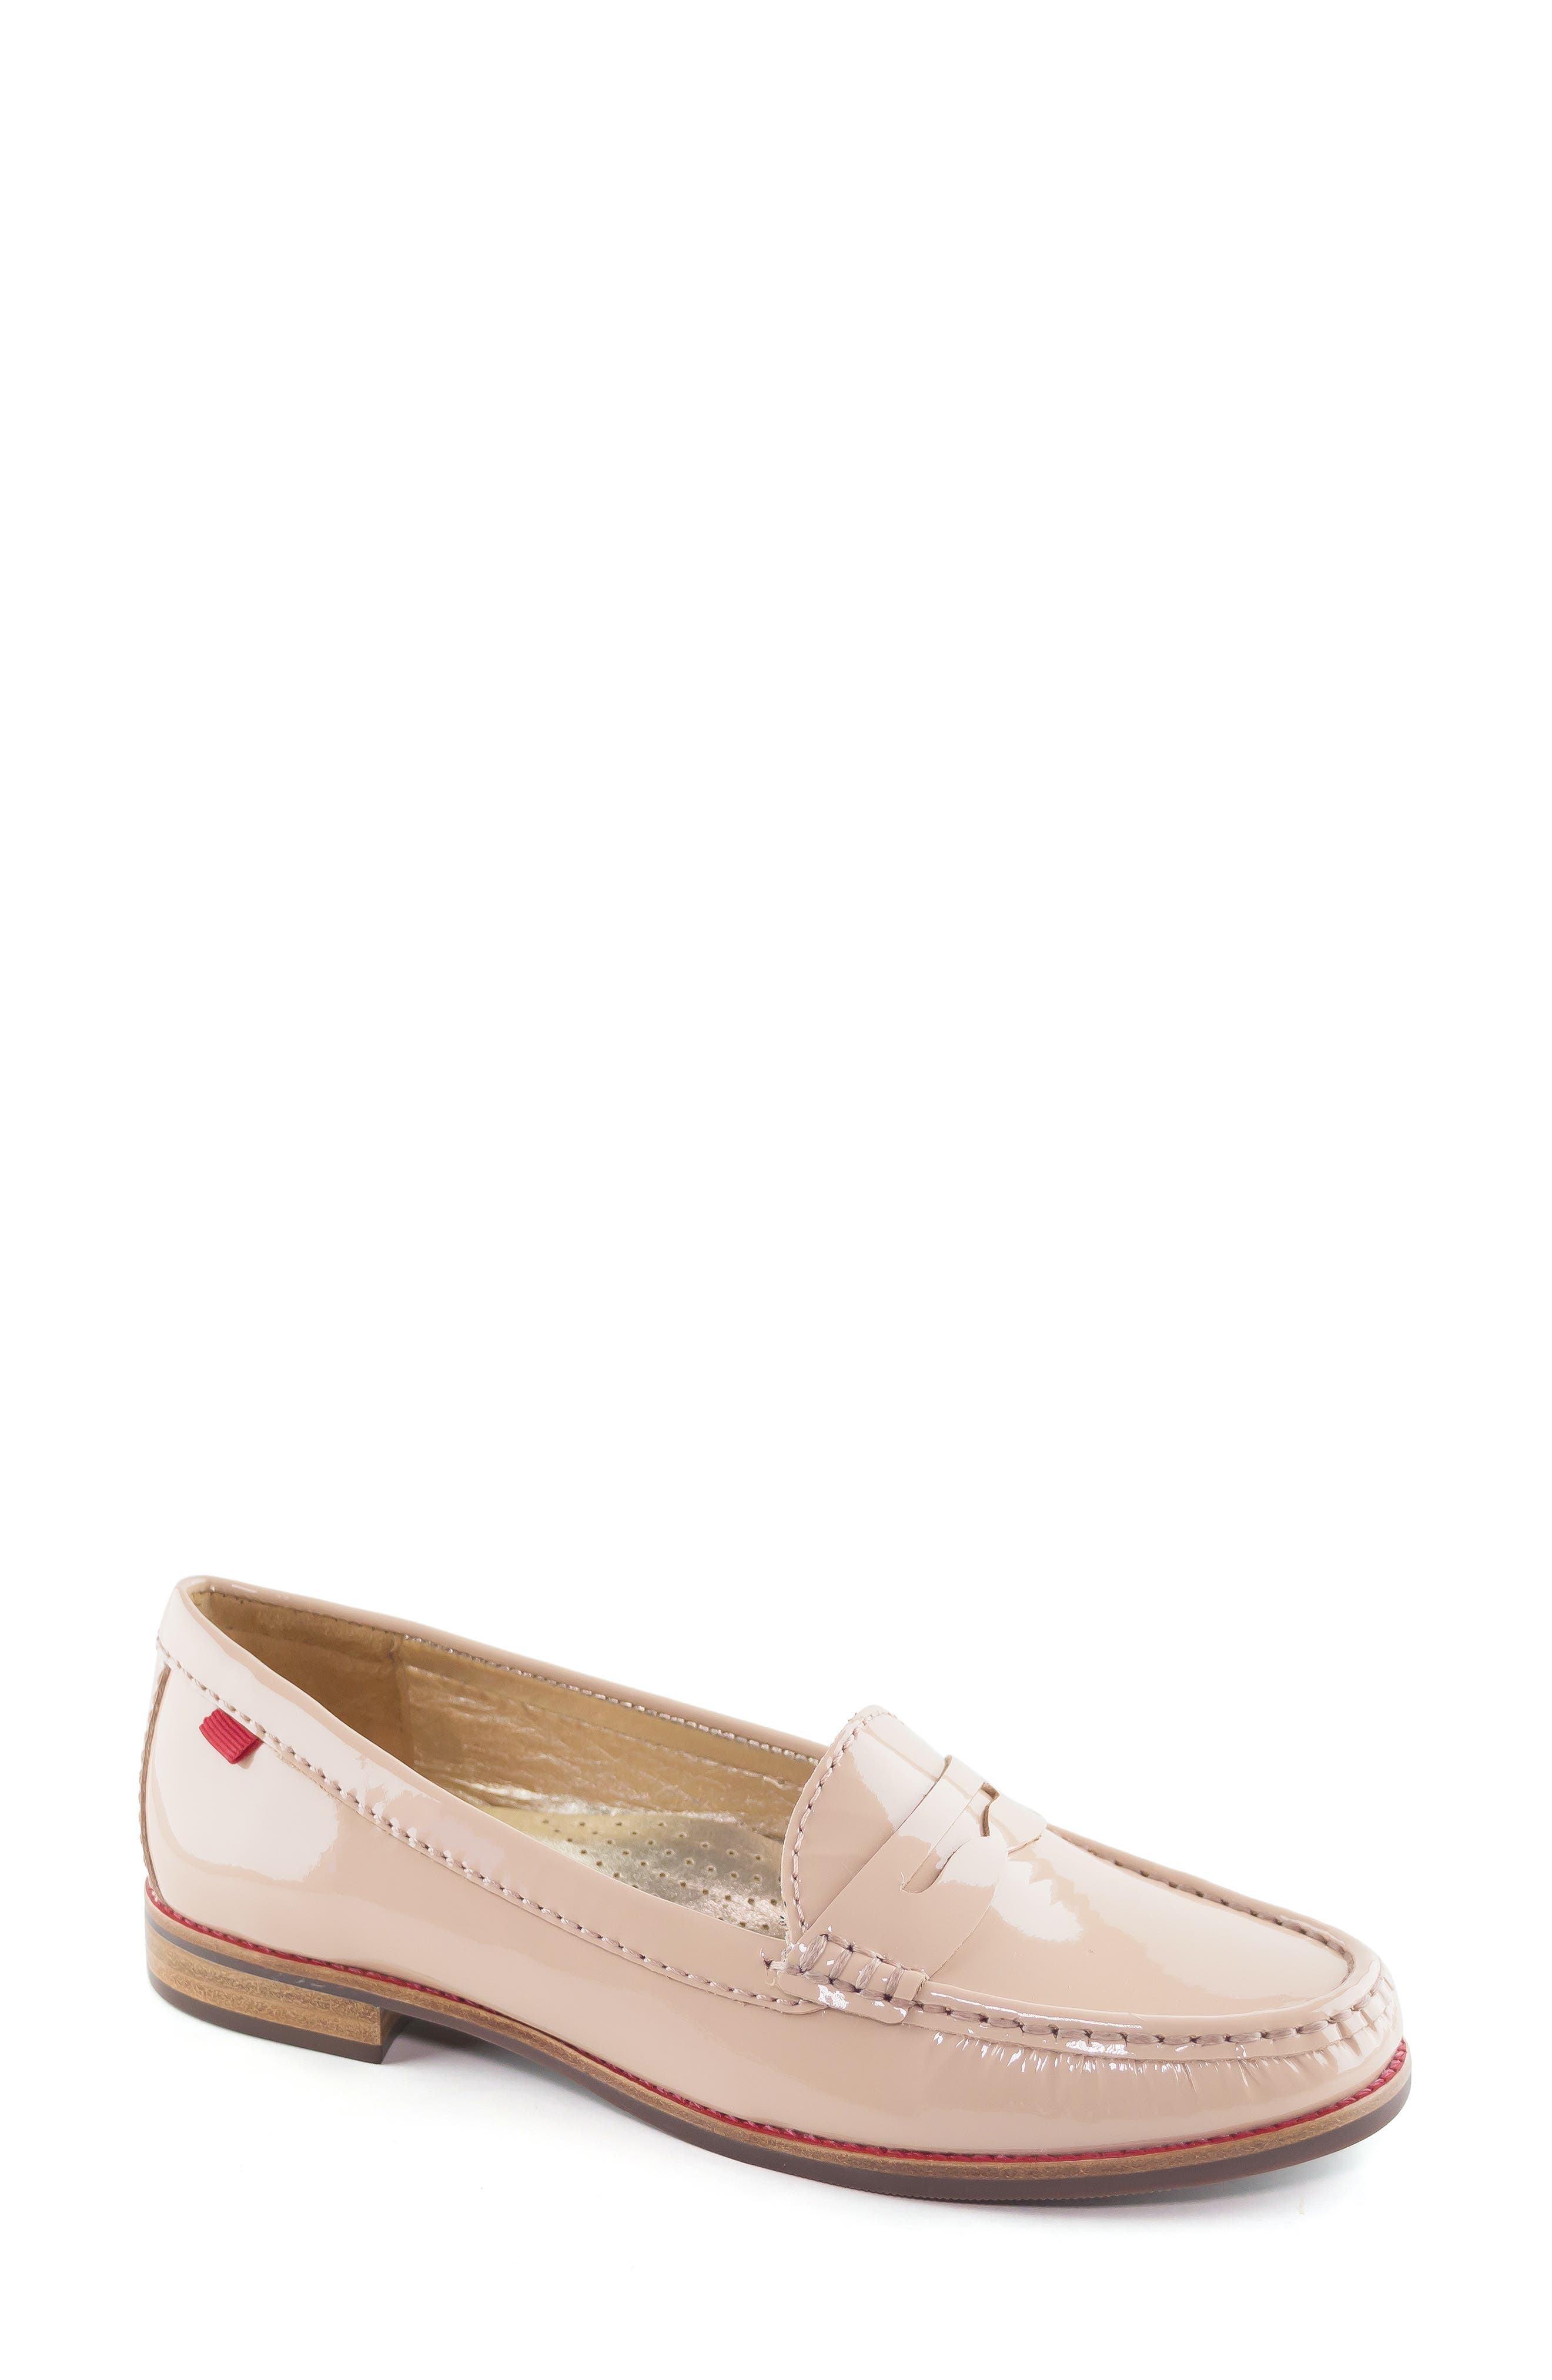 East Village Loafer, Main, color, NUDE PATENT